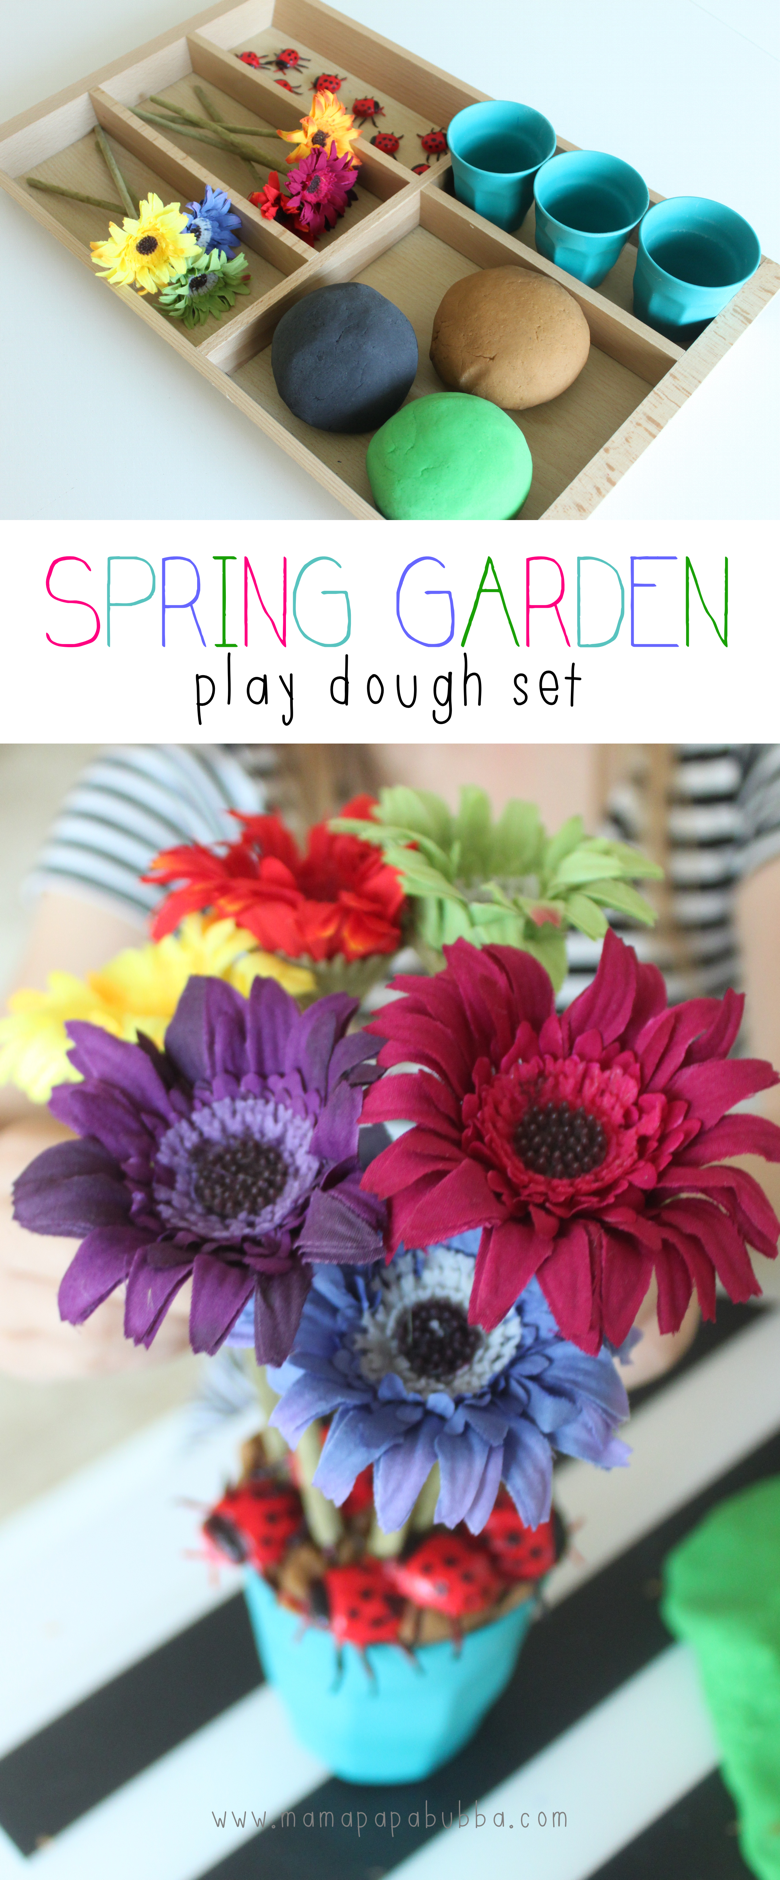 Spring Garden Play Dough Set | Mama Papa Bubba